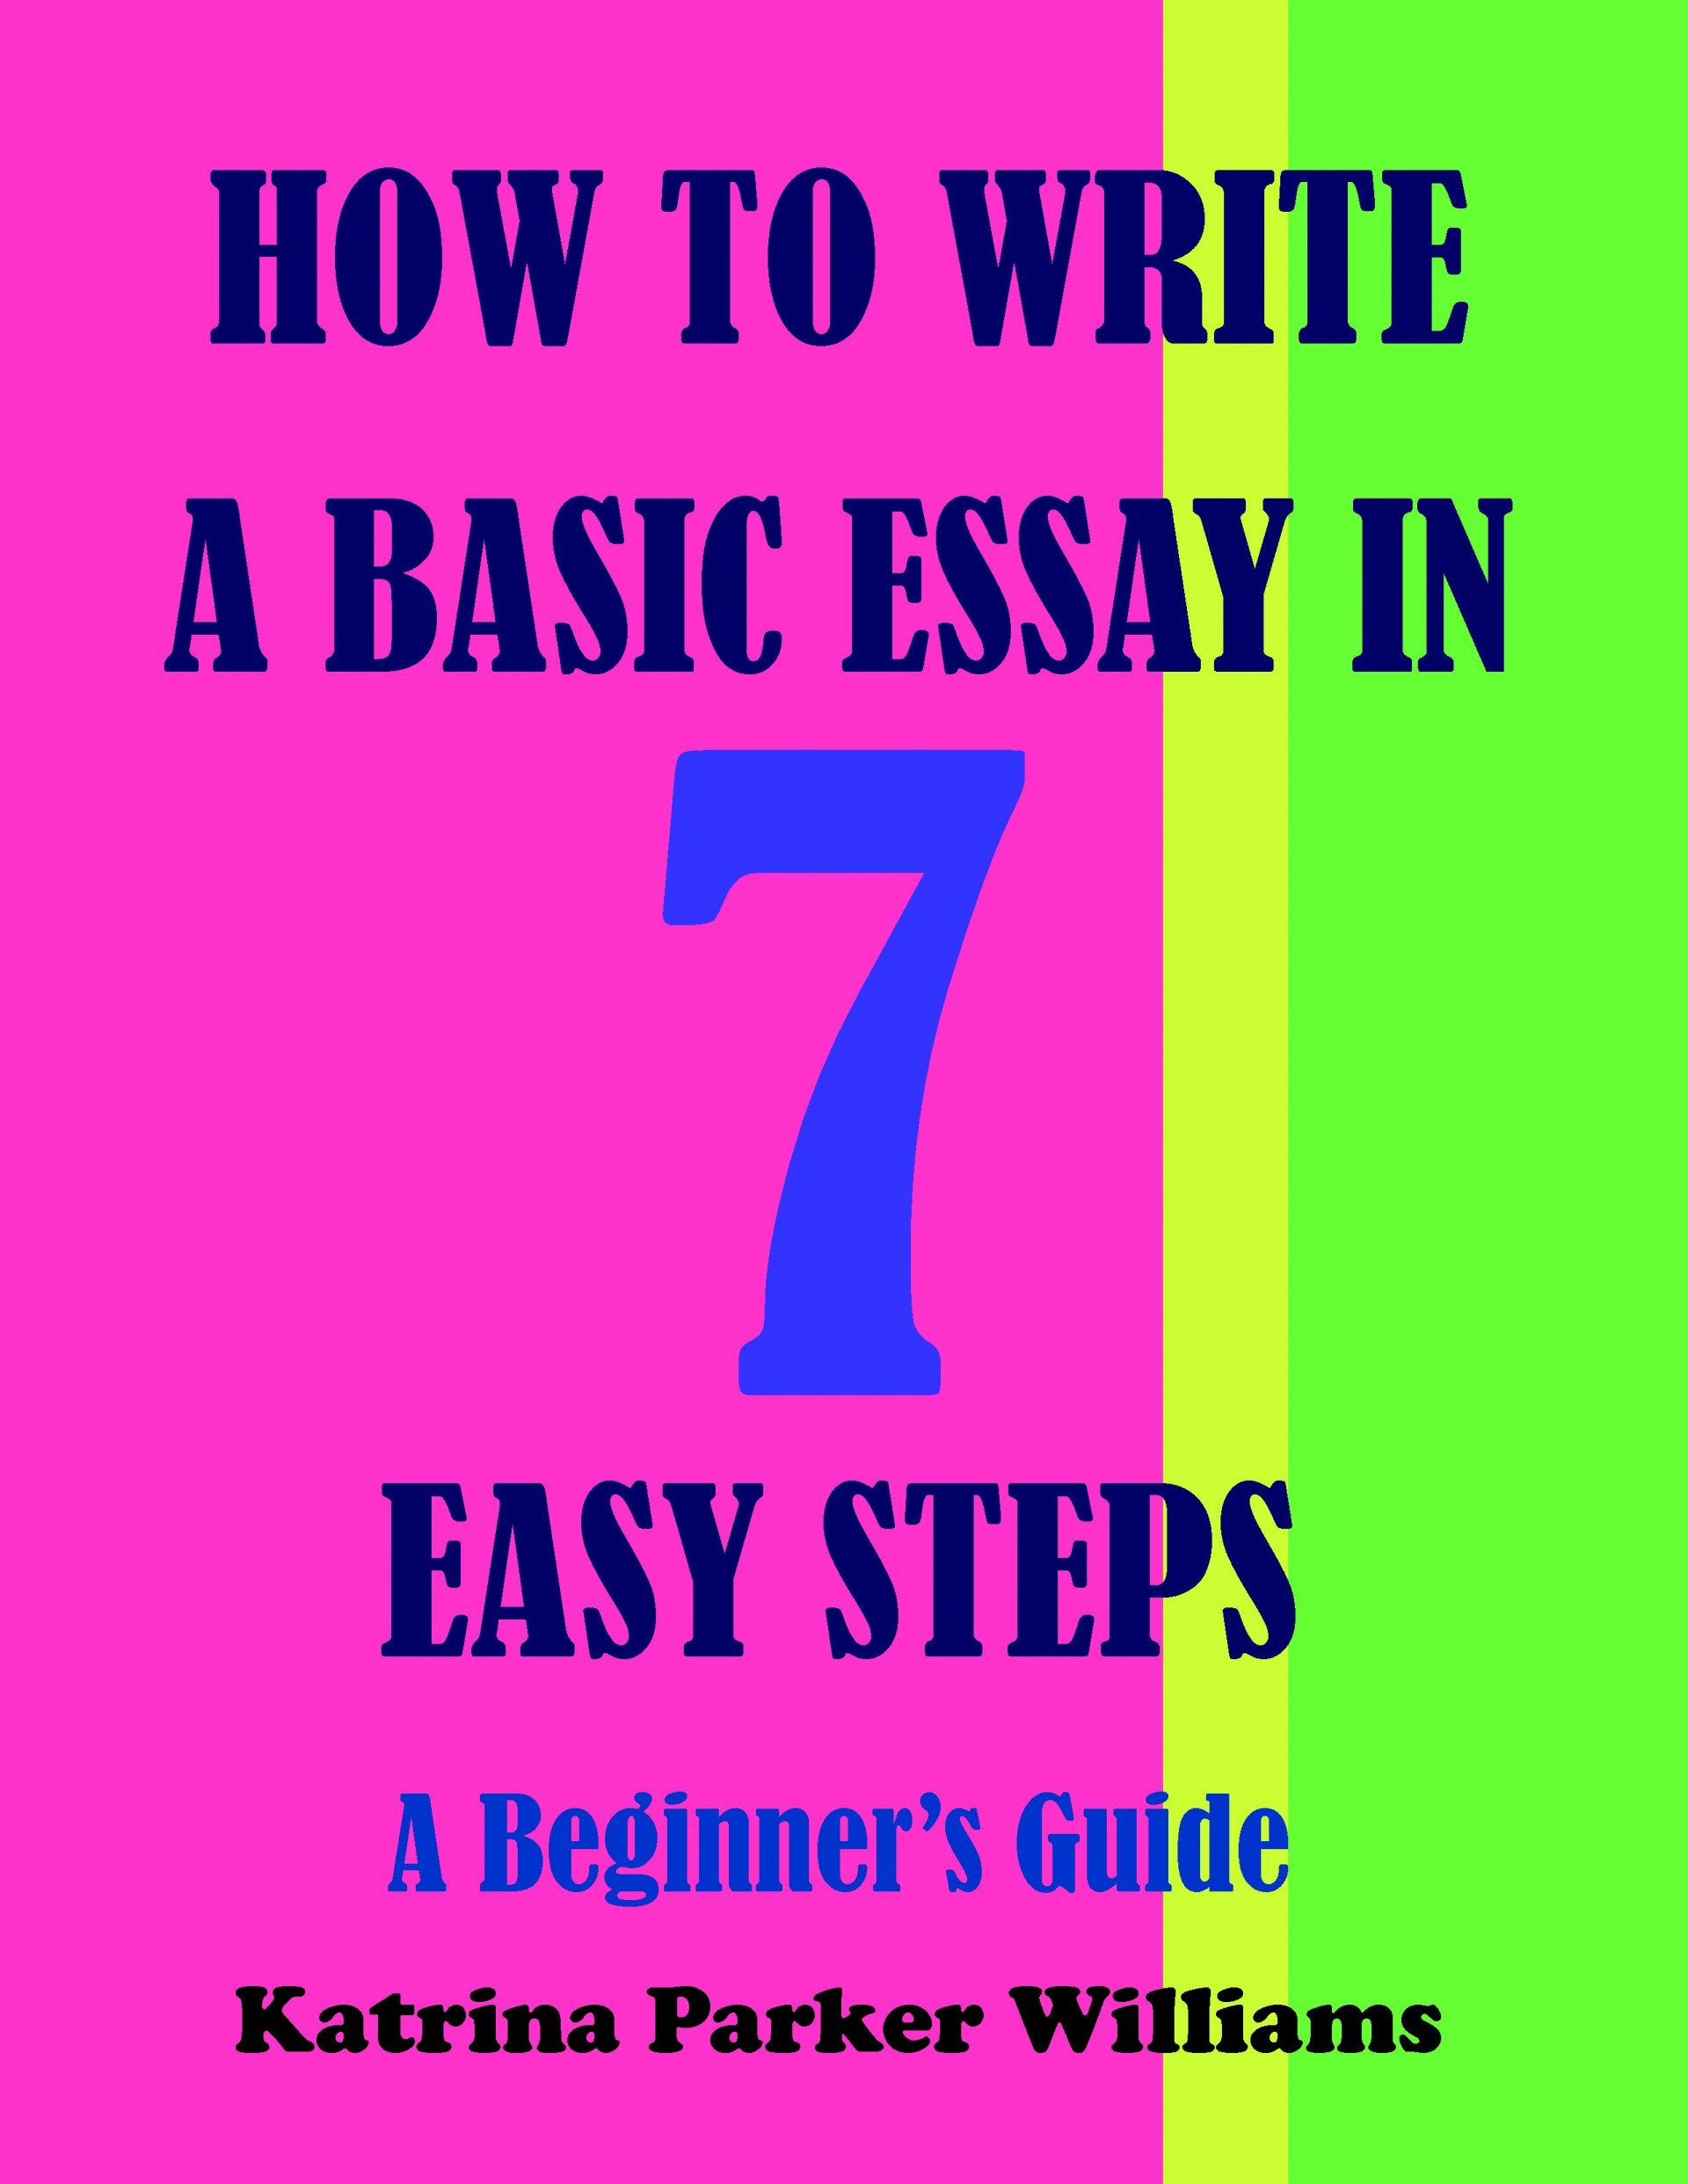 011 Essay Example How To Write Basic In Seven Easy Steps Staggering An Telugu Mla Format Pdf 1920